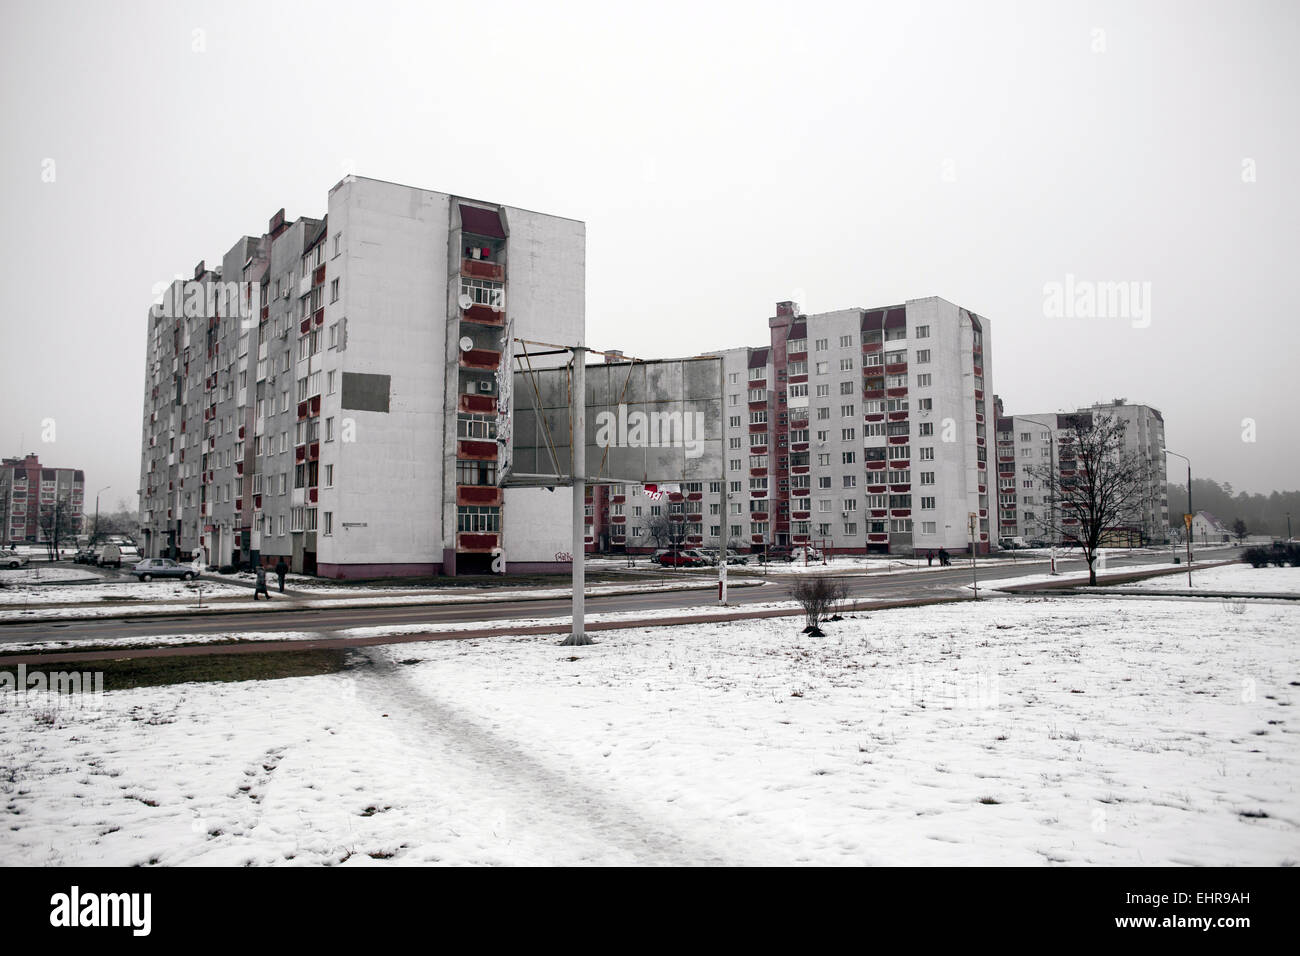 Flats built for the survivors of the Chernobyl disaster, Slavutych, Ukraine - Stock Image